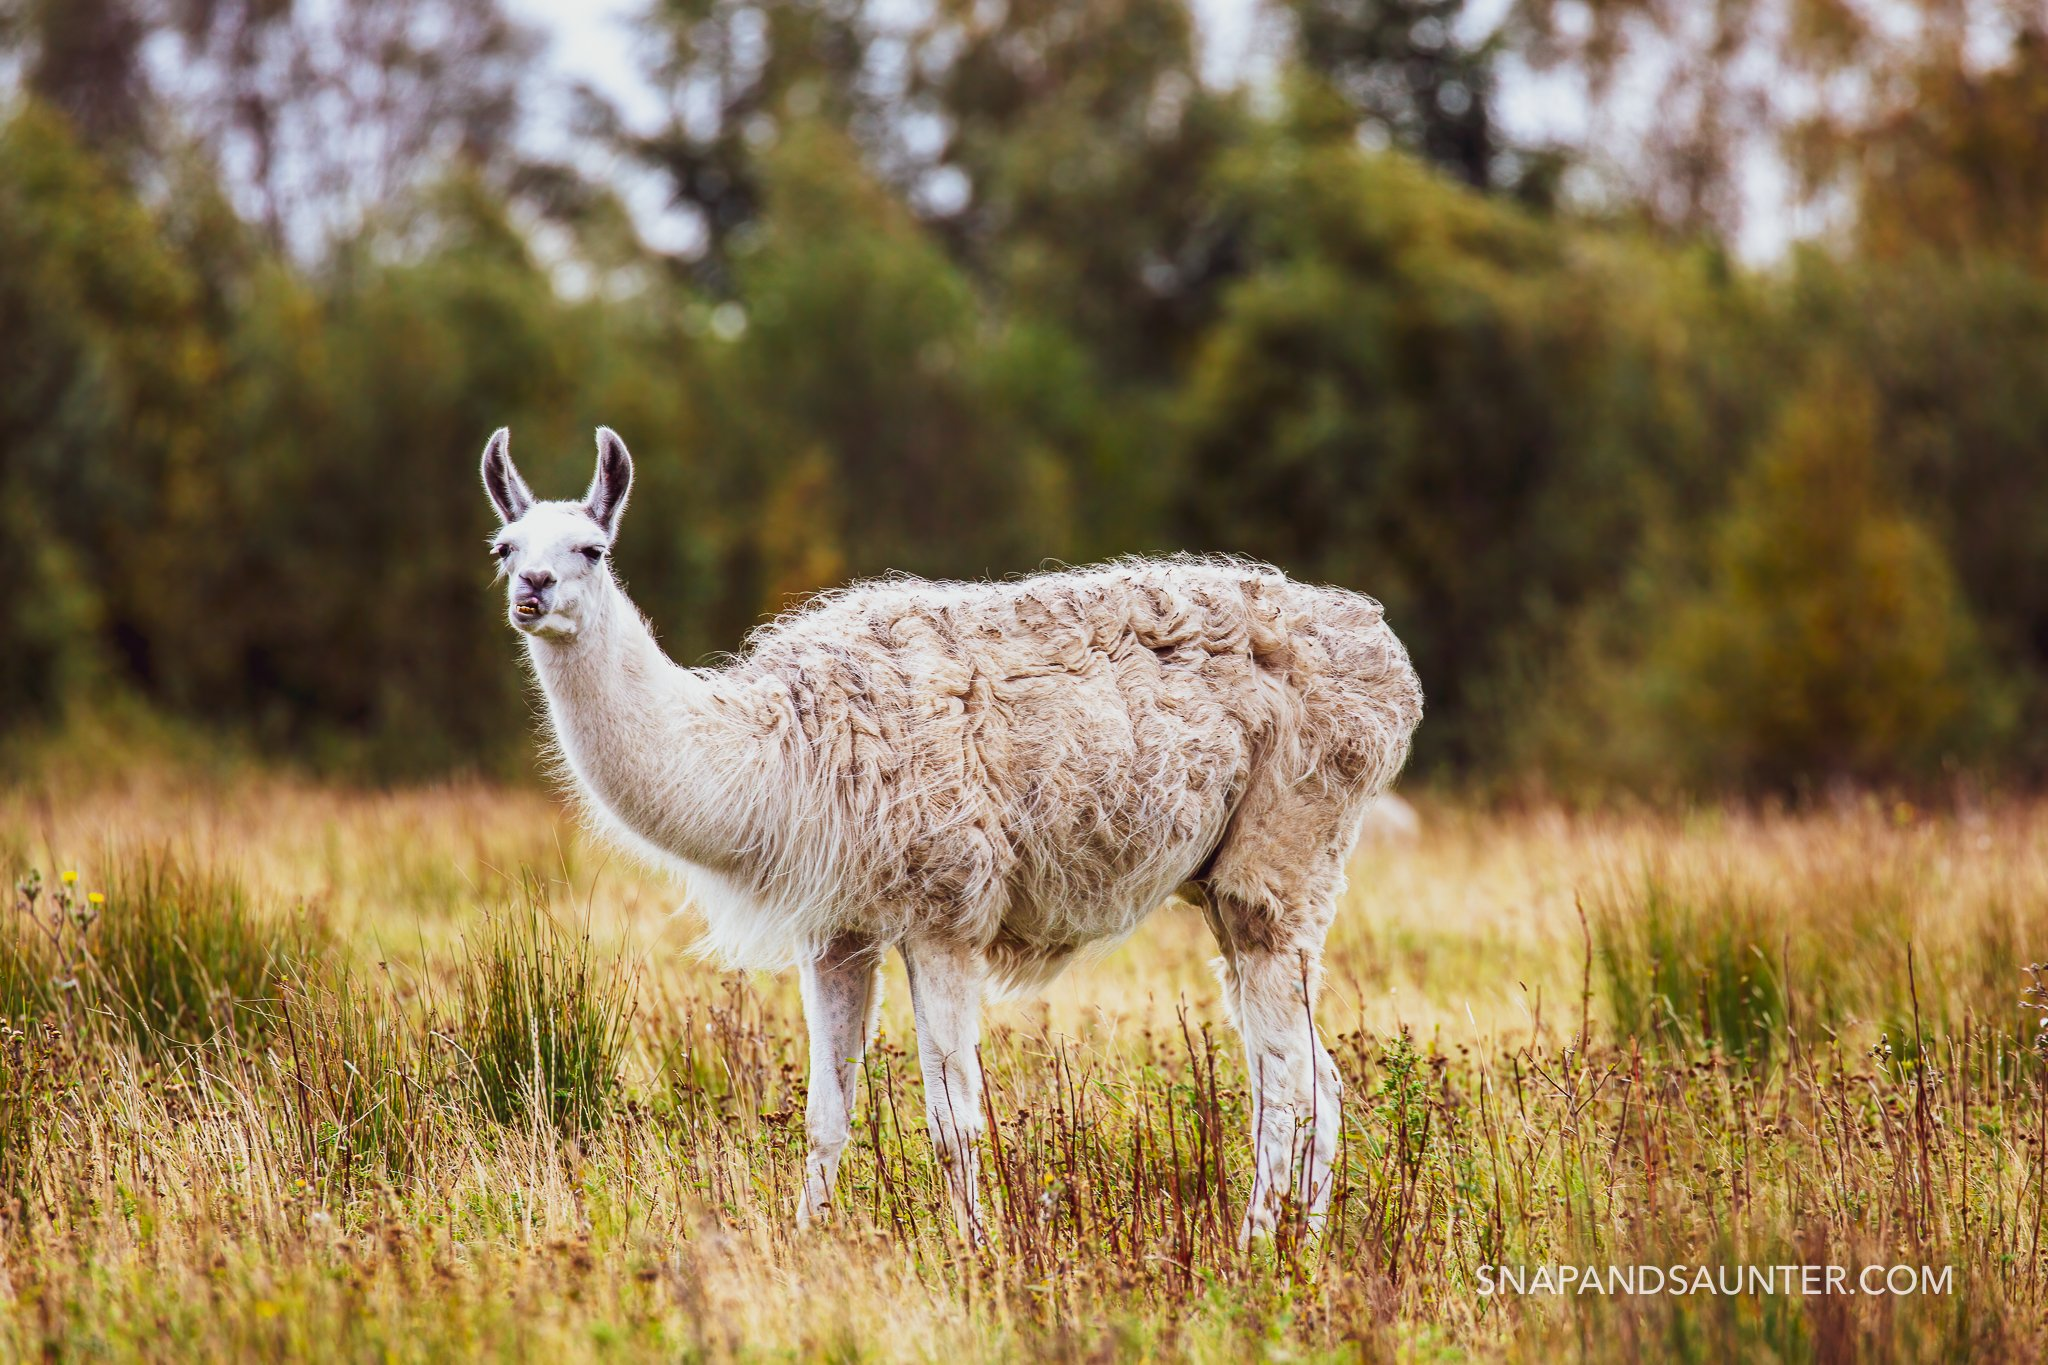 grazing white llama at potteric carr nature reserve at doncaster